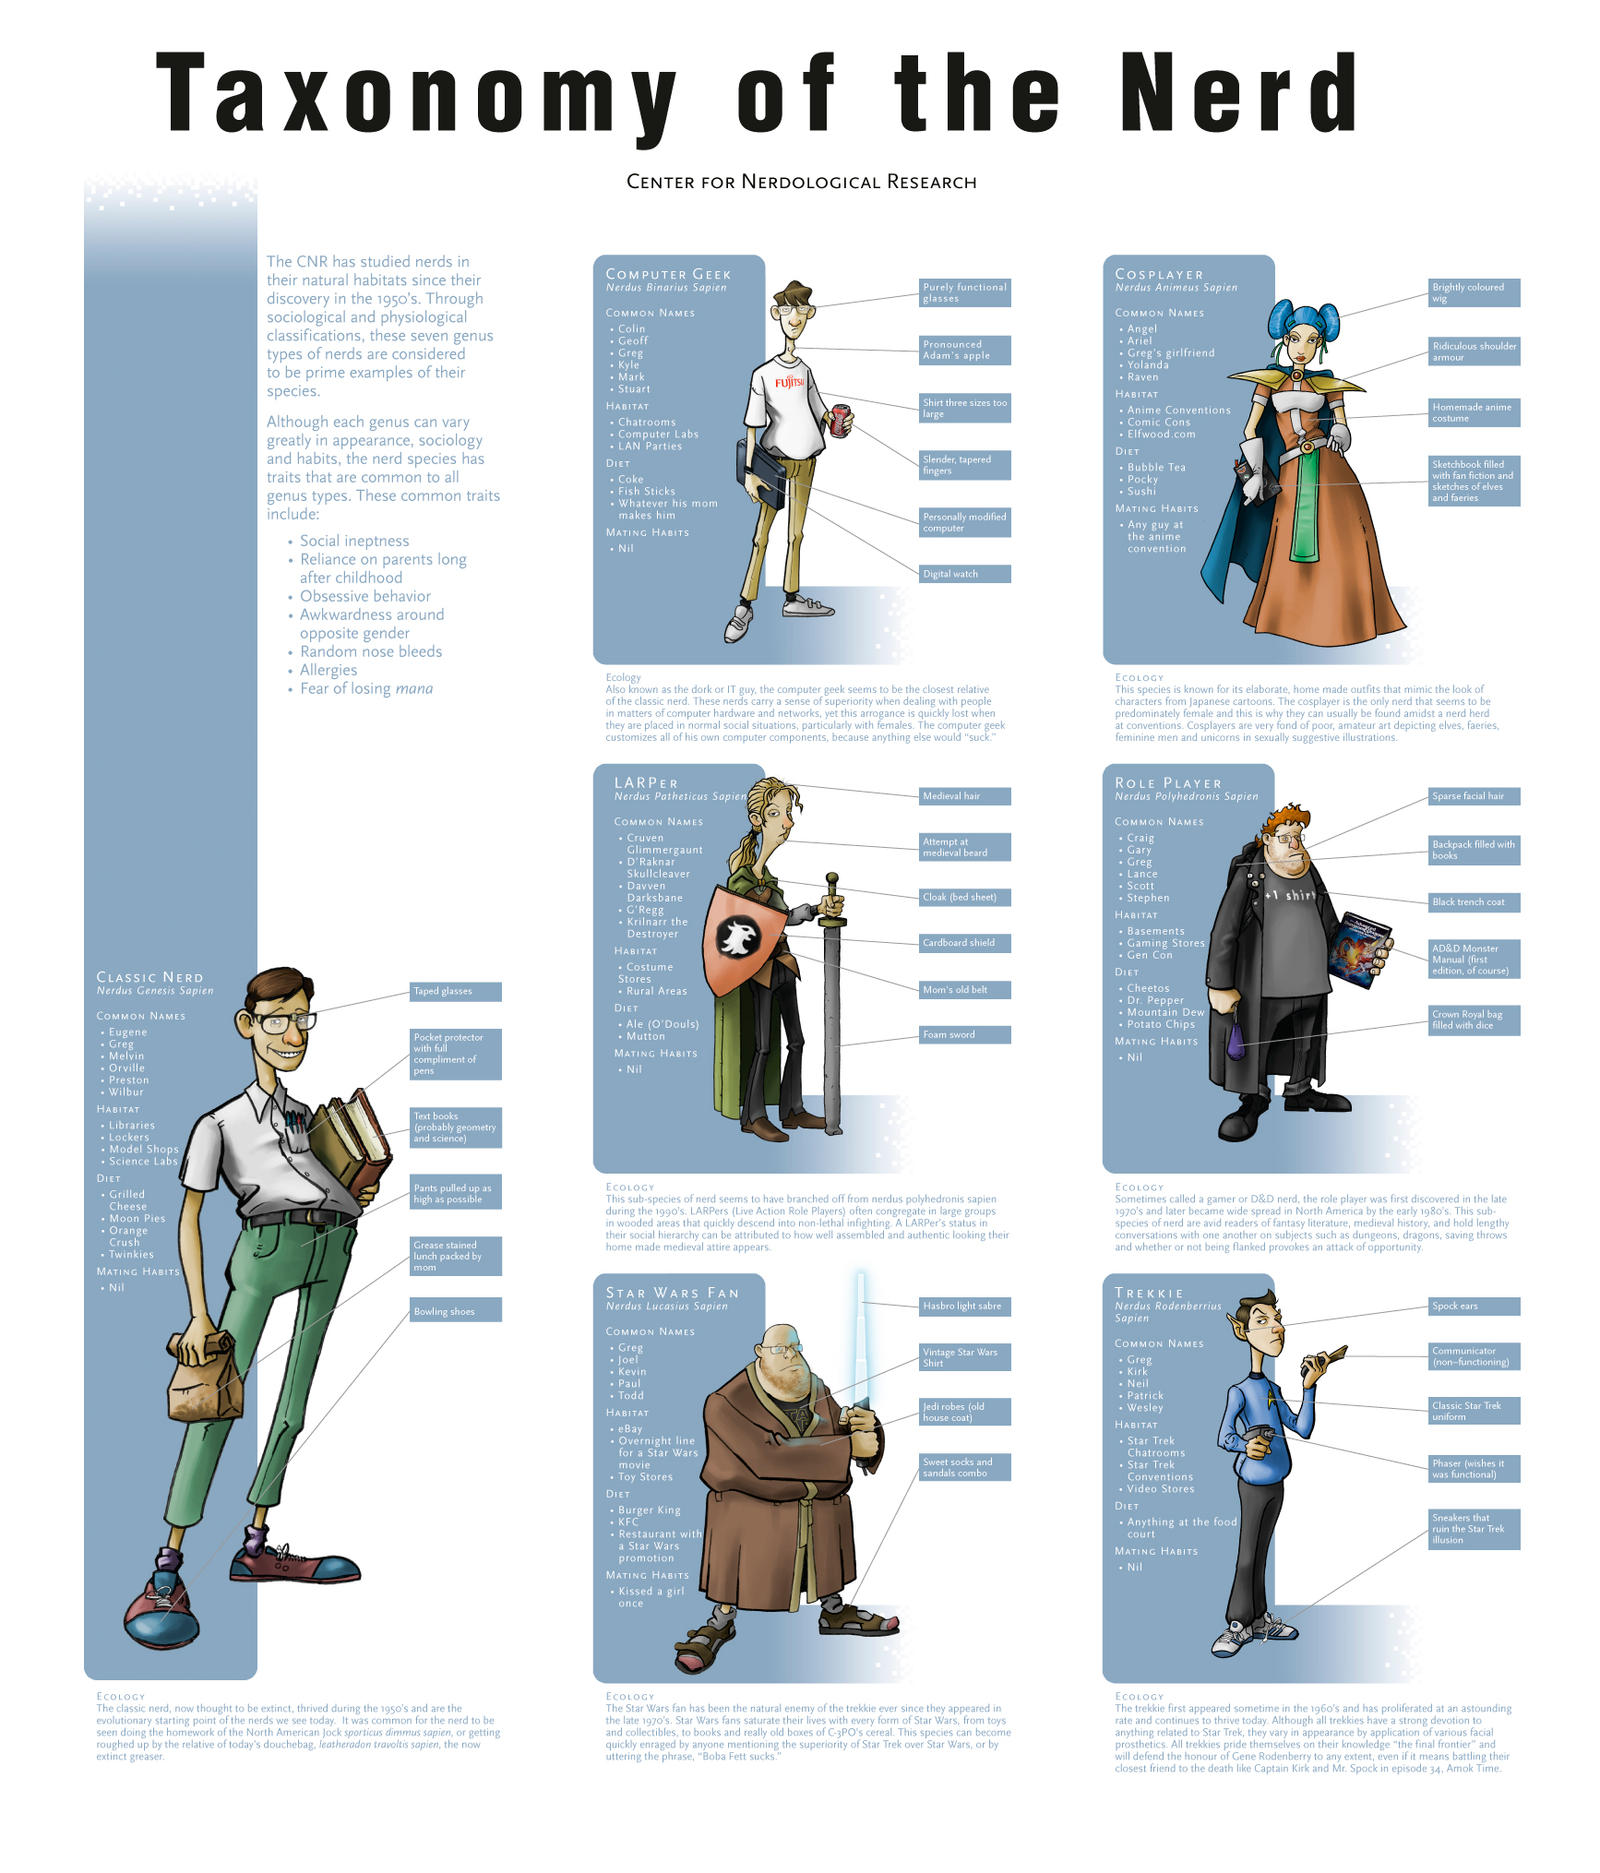 Taxonomy of the Nerd by opteryx